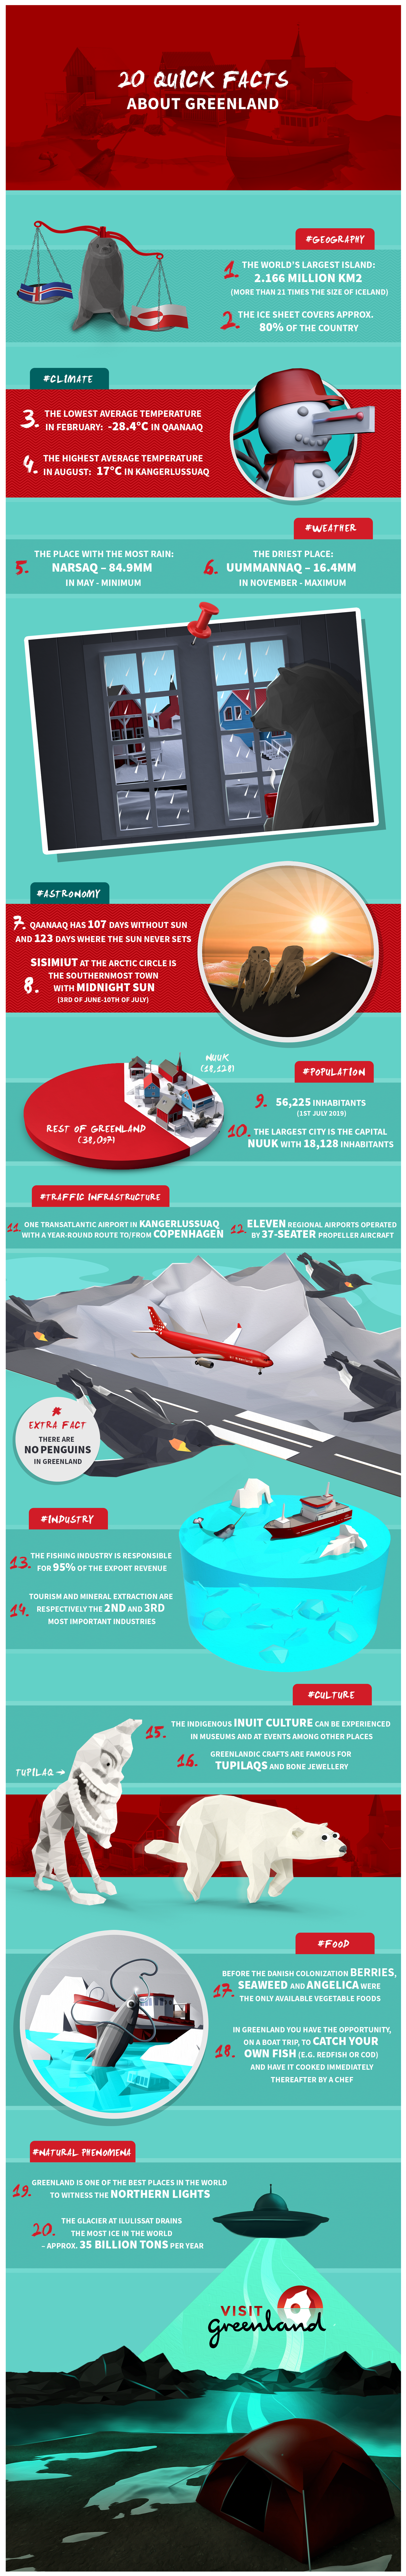 20-Quick-Facts-About-Greenland-Infographic-FG_EN-Store